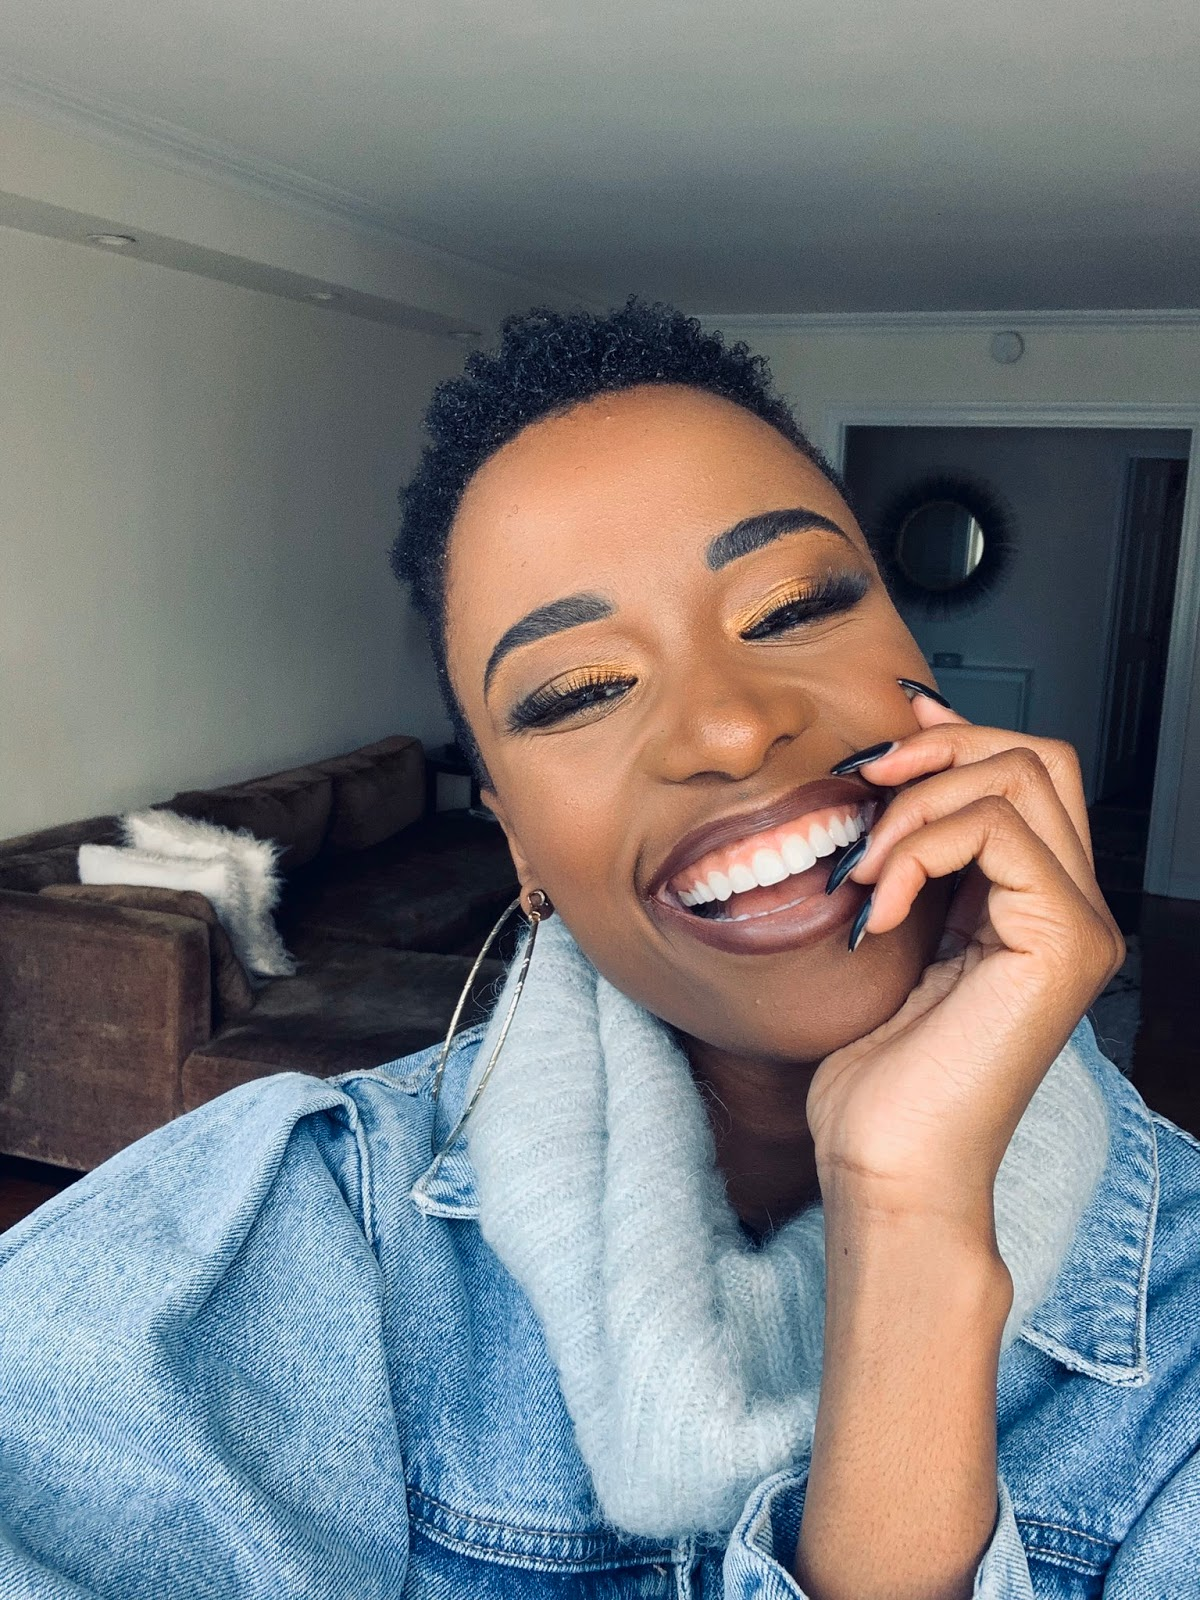 Zozibini Tunzi On The Day She Cut Her Hair: 'The Moment My Hair Hit The Floor, I Realised How Beautiful I Was'